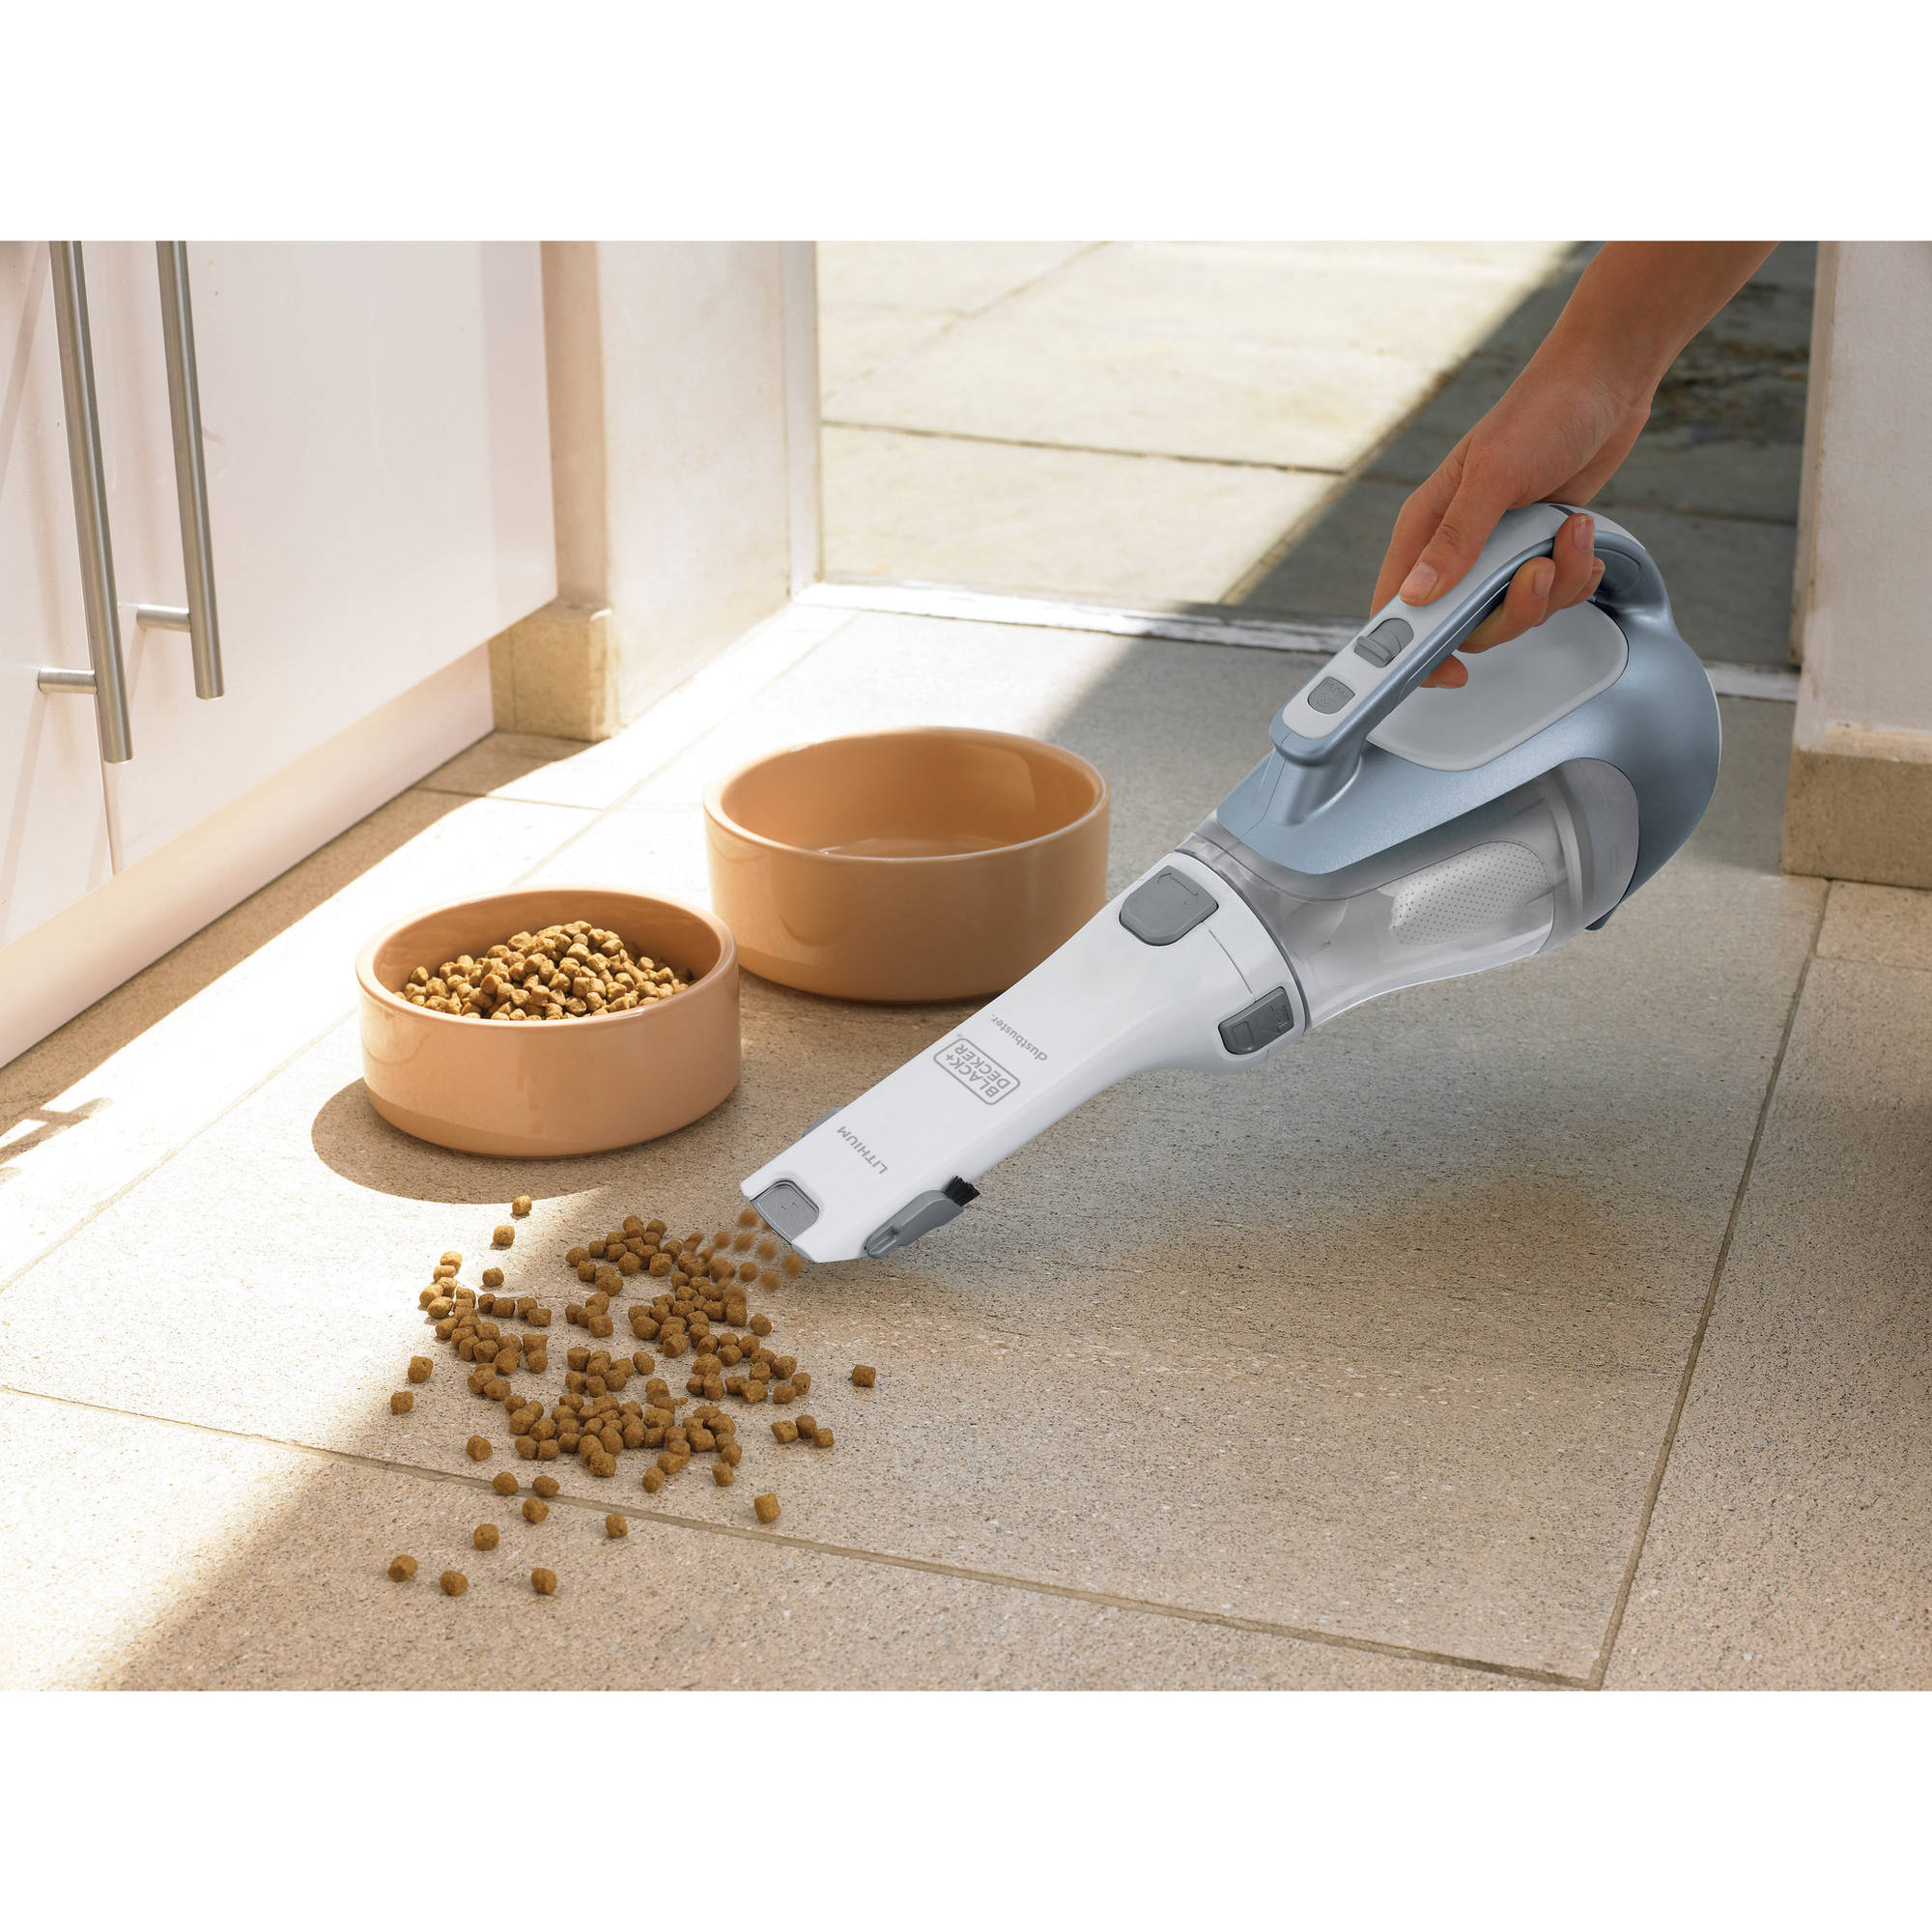 BLACK+DECKER DUSTBUSTER 16V Lithium Hand Vacuum, CHV1410L32 - FLJ CORPORATIONS